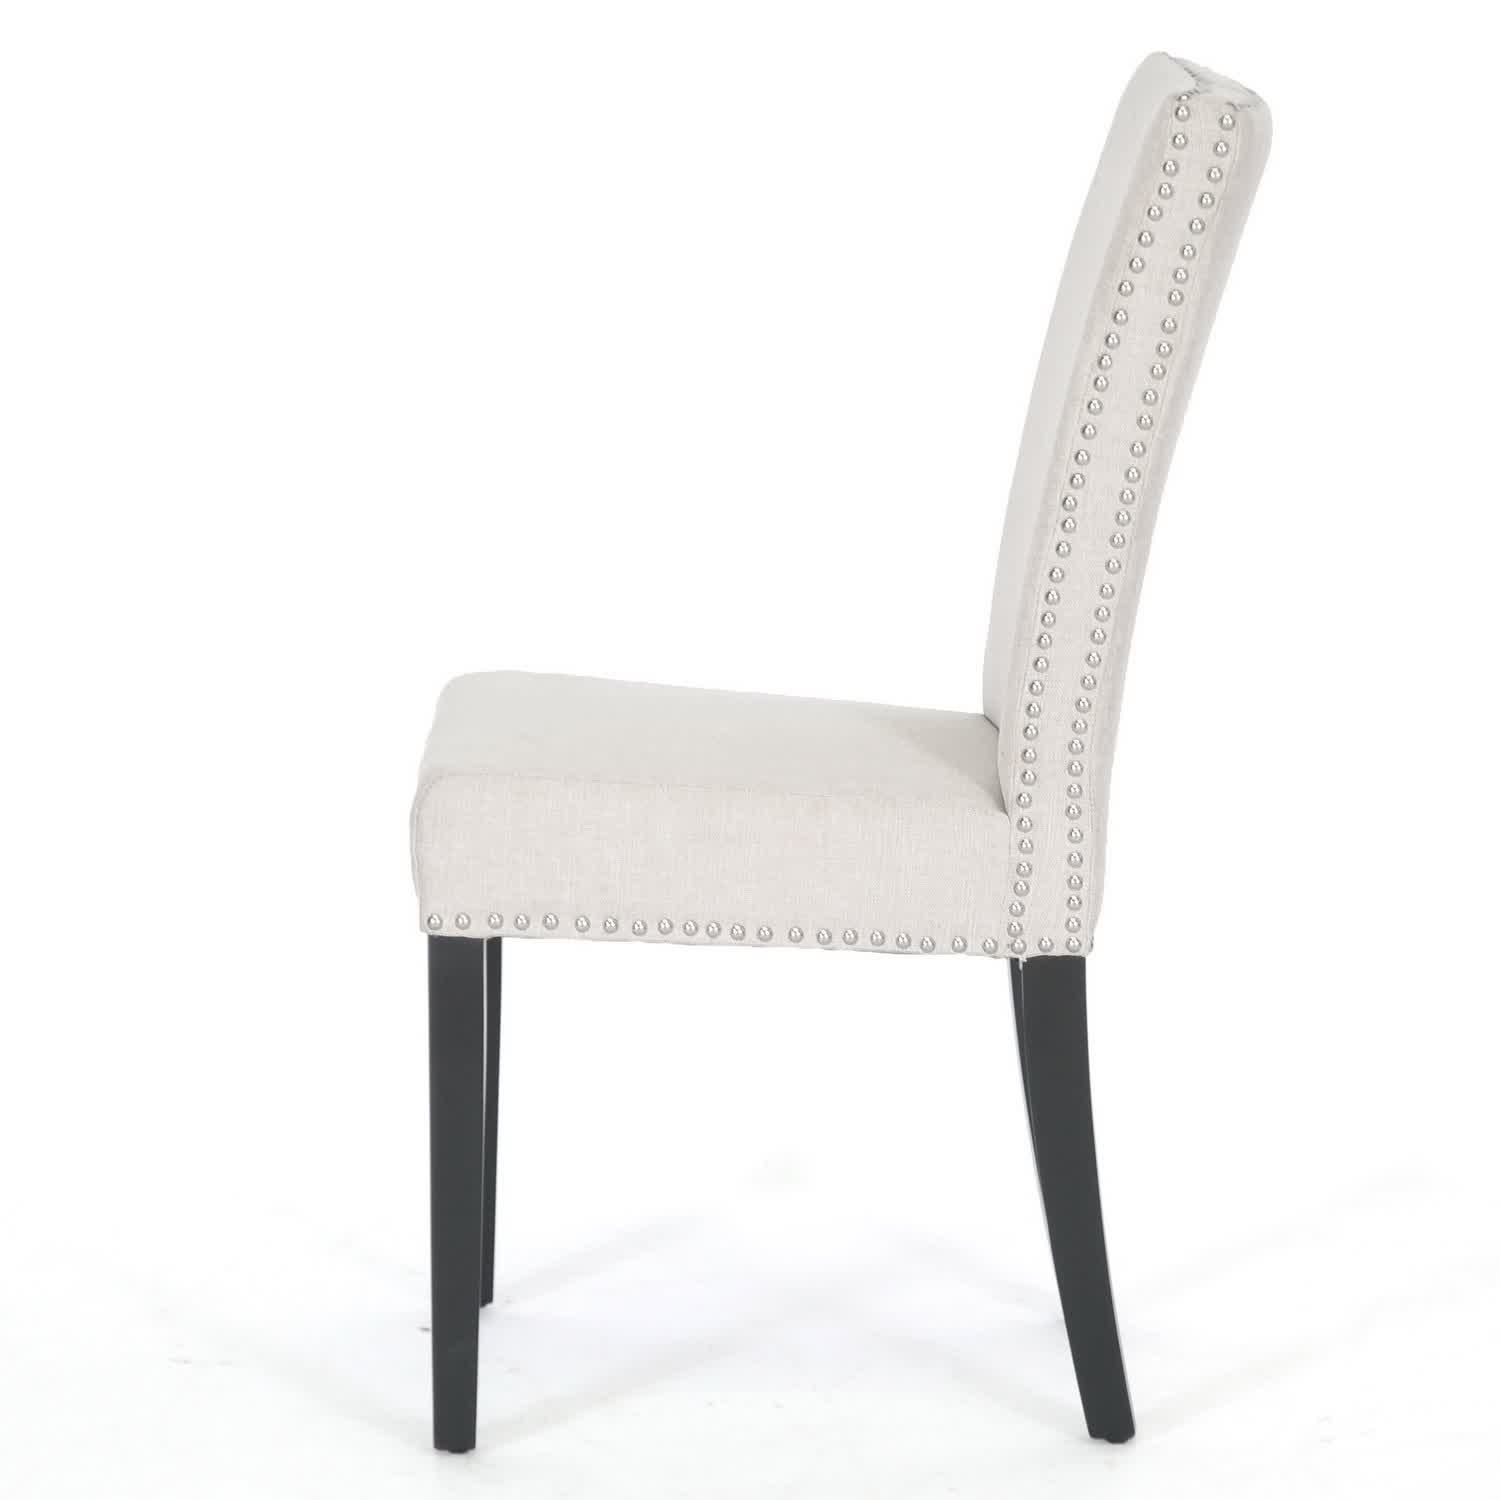 White Upholstered Dining Chair Covered With Leather And Embelished Nailheads For Comfy Area